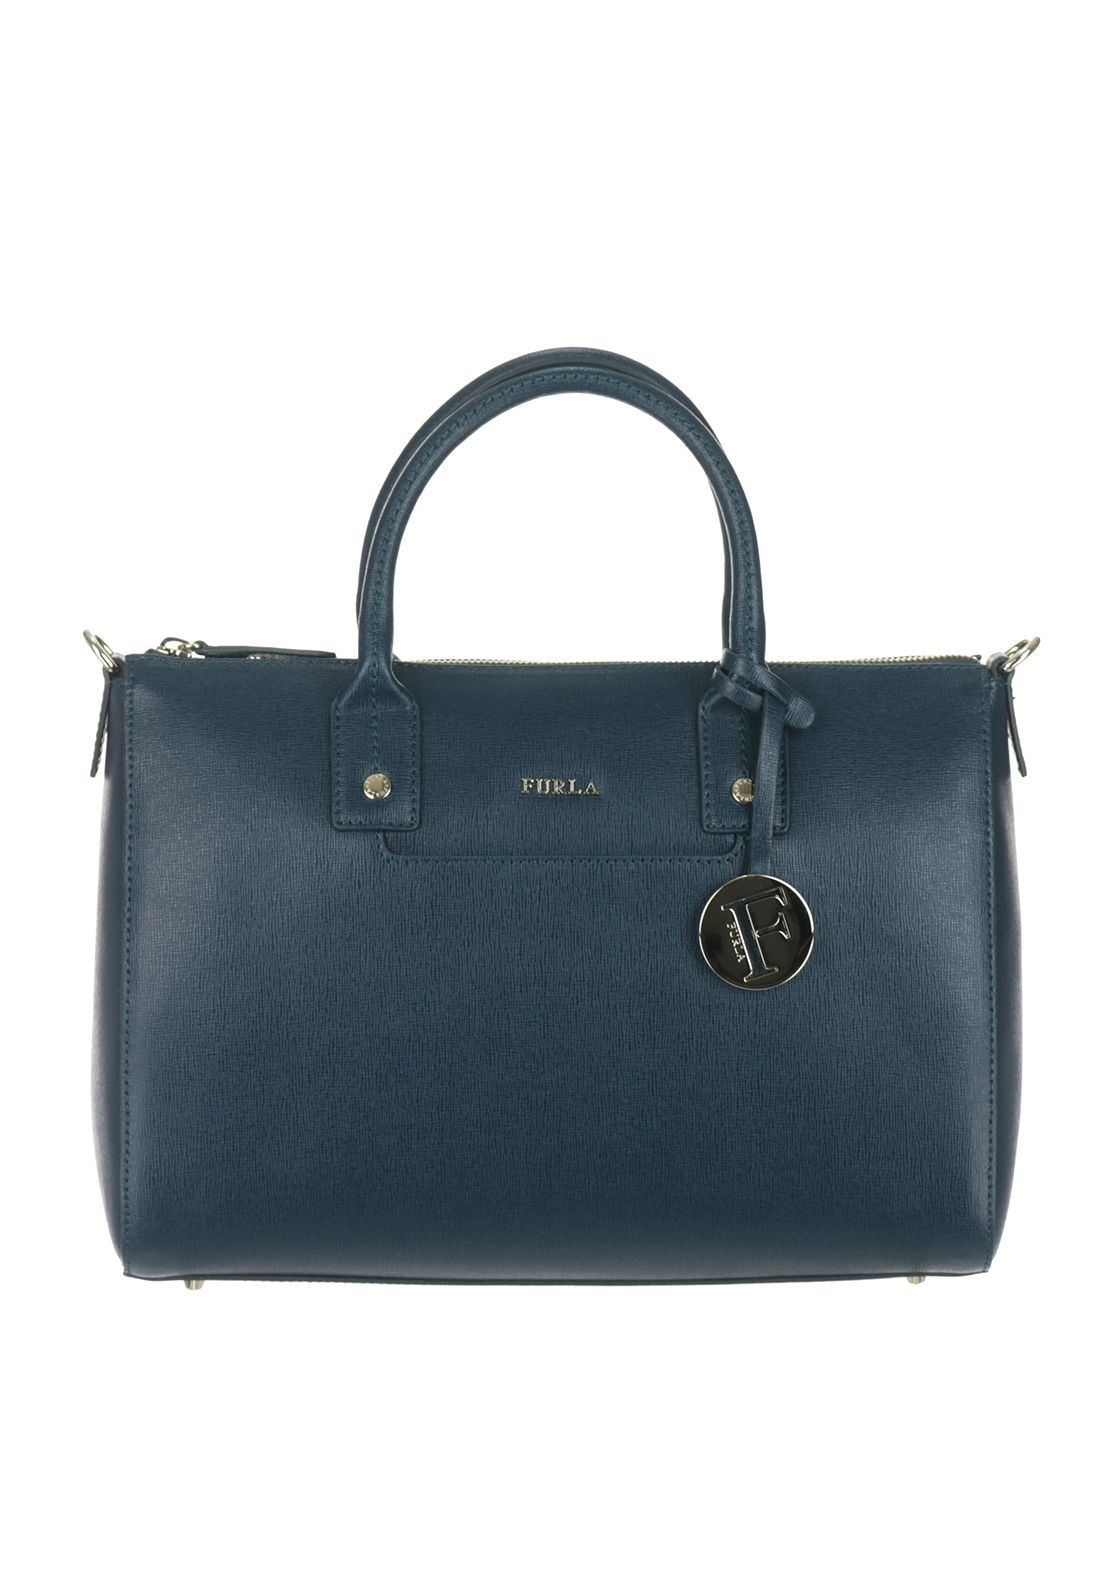 Furla Linda Satchel, Teal Green